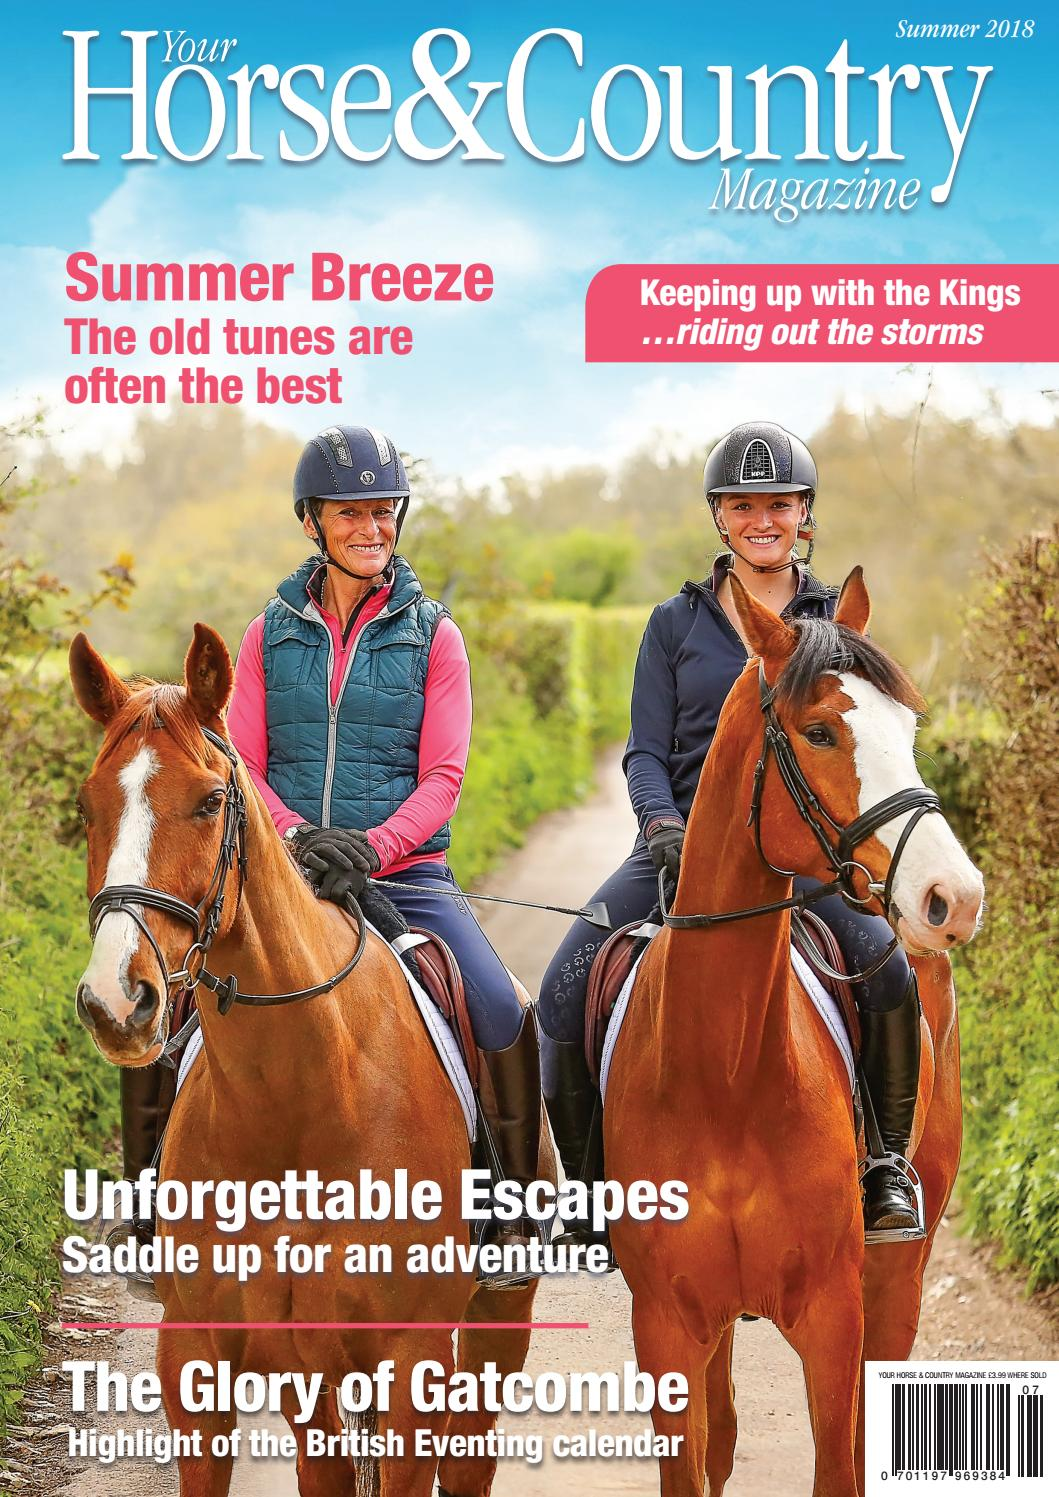 Your Horse & Country Magazine by yourhorseandcountry - issuu